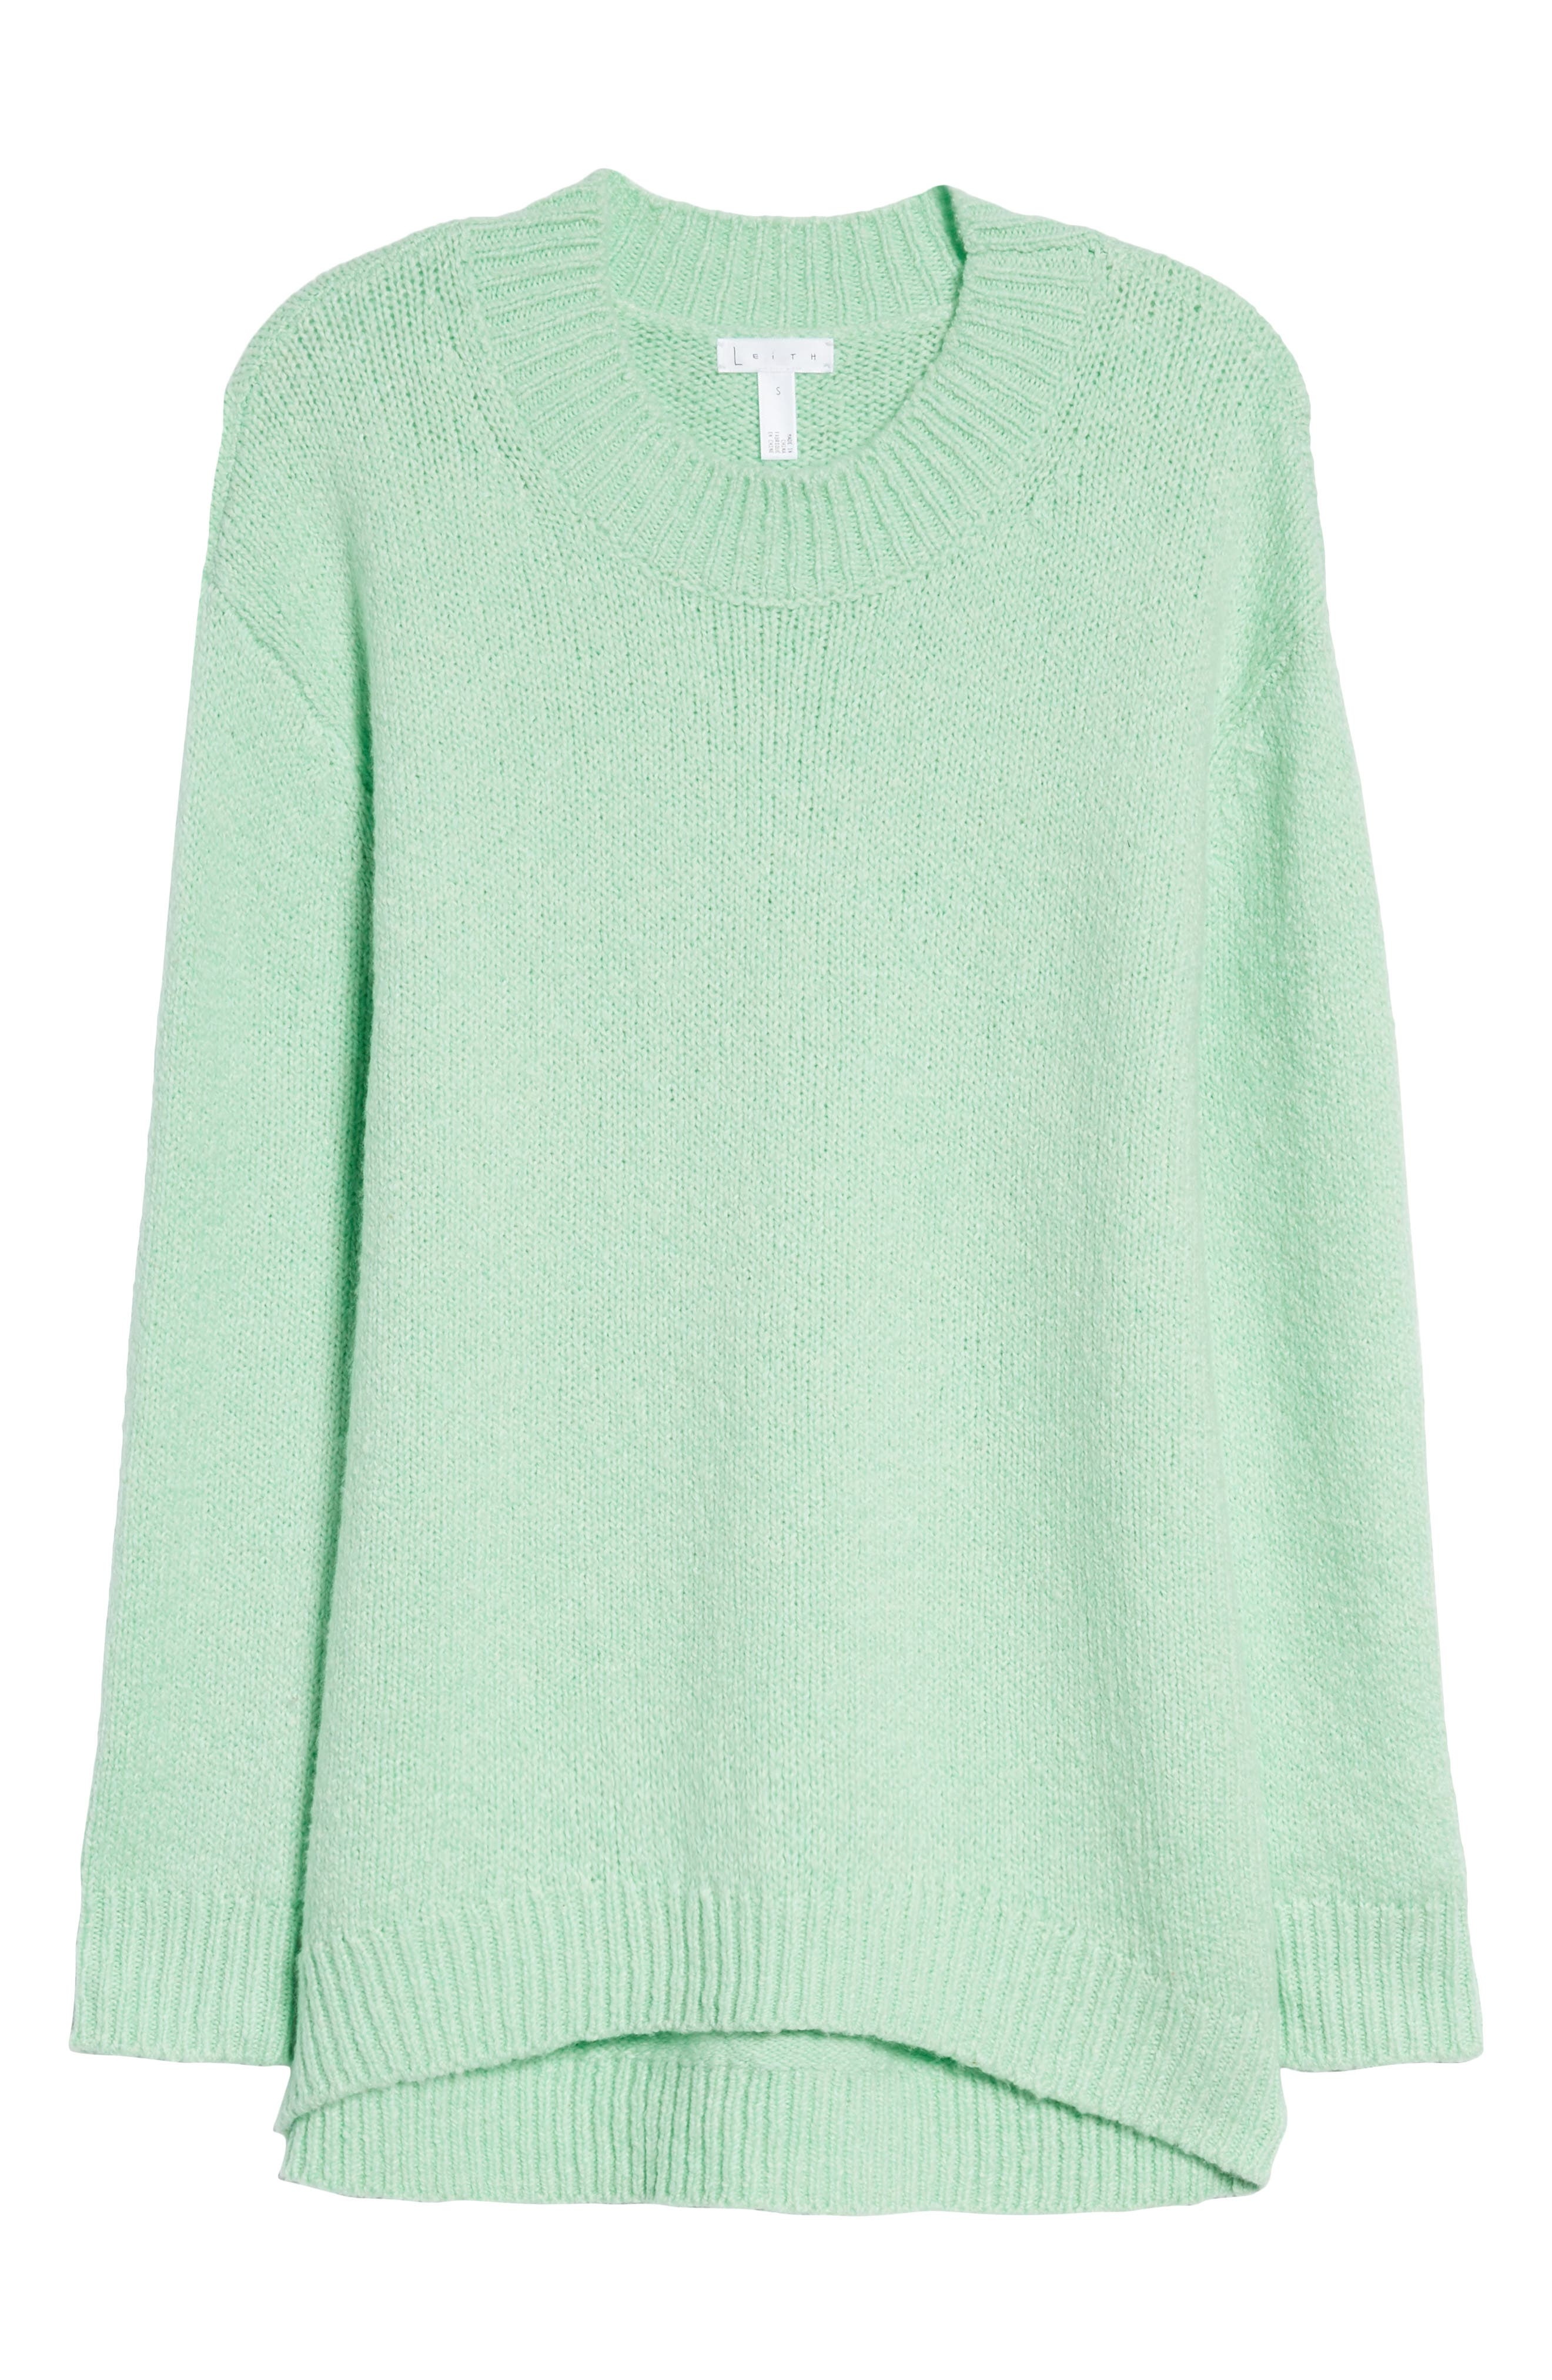 High-Low Sweater,                             Alternate thumbnail 6, color,                             GREEN ASH